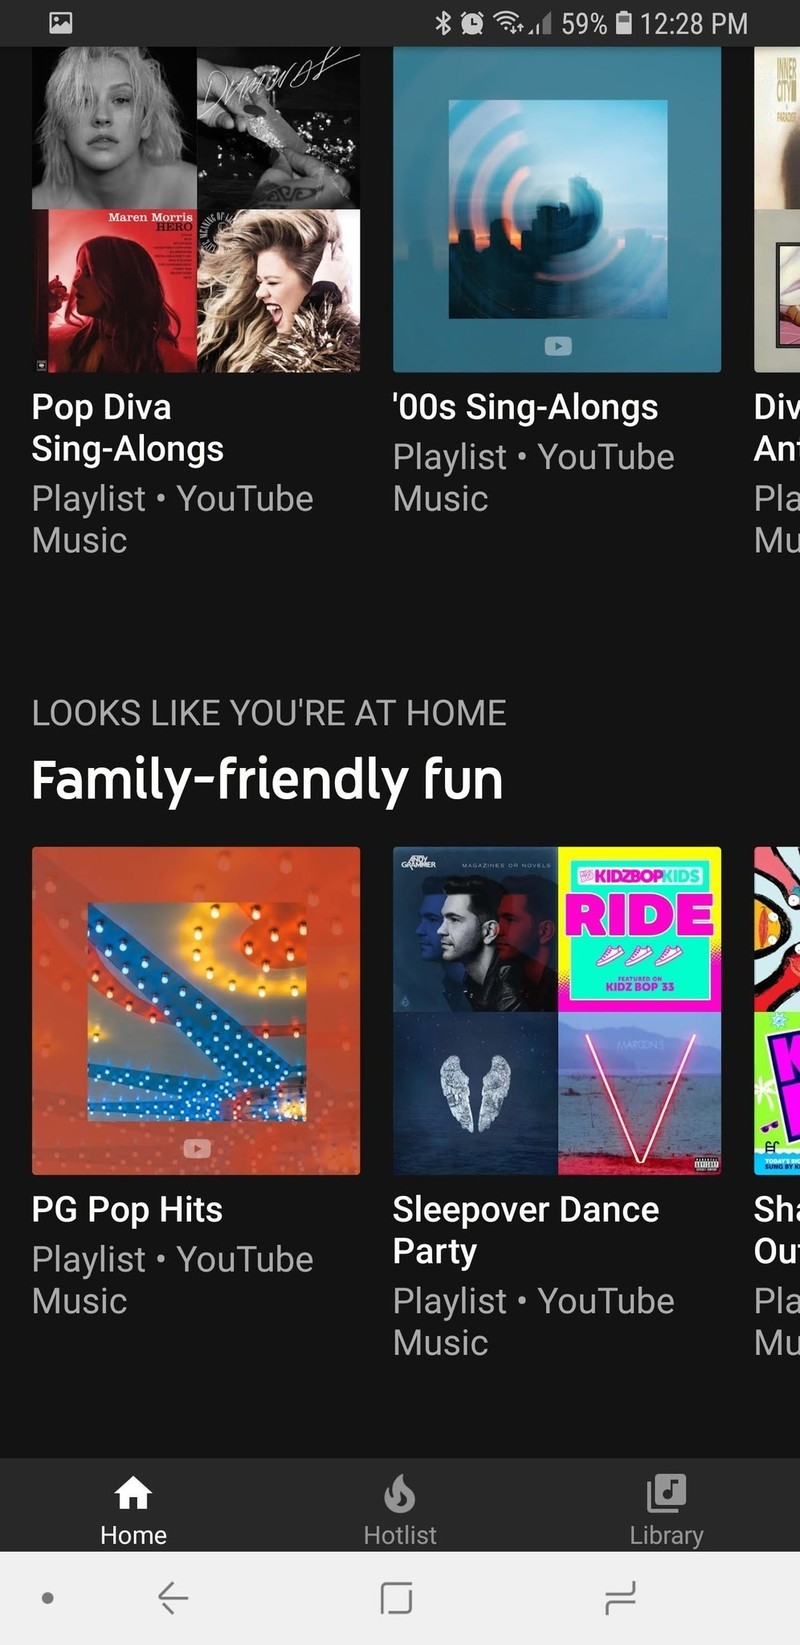 ytmusic-location-recommendations.jpg?ito